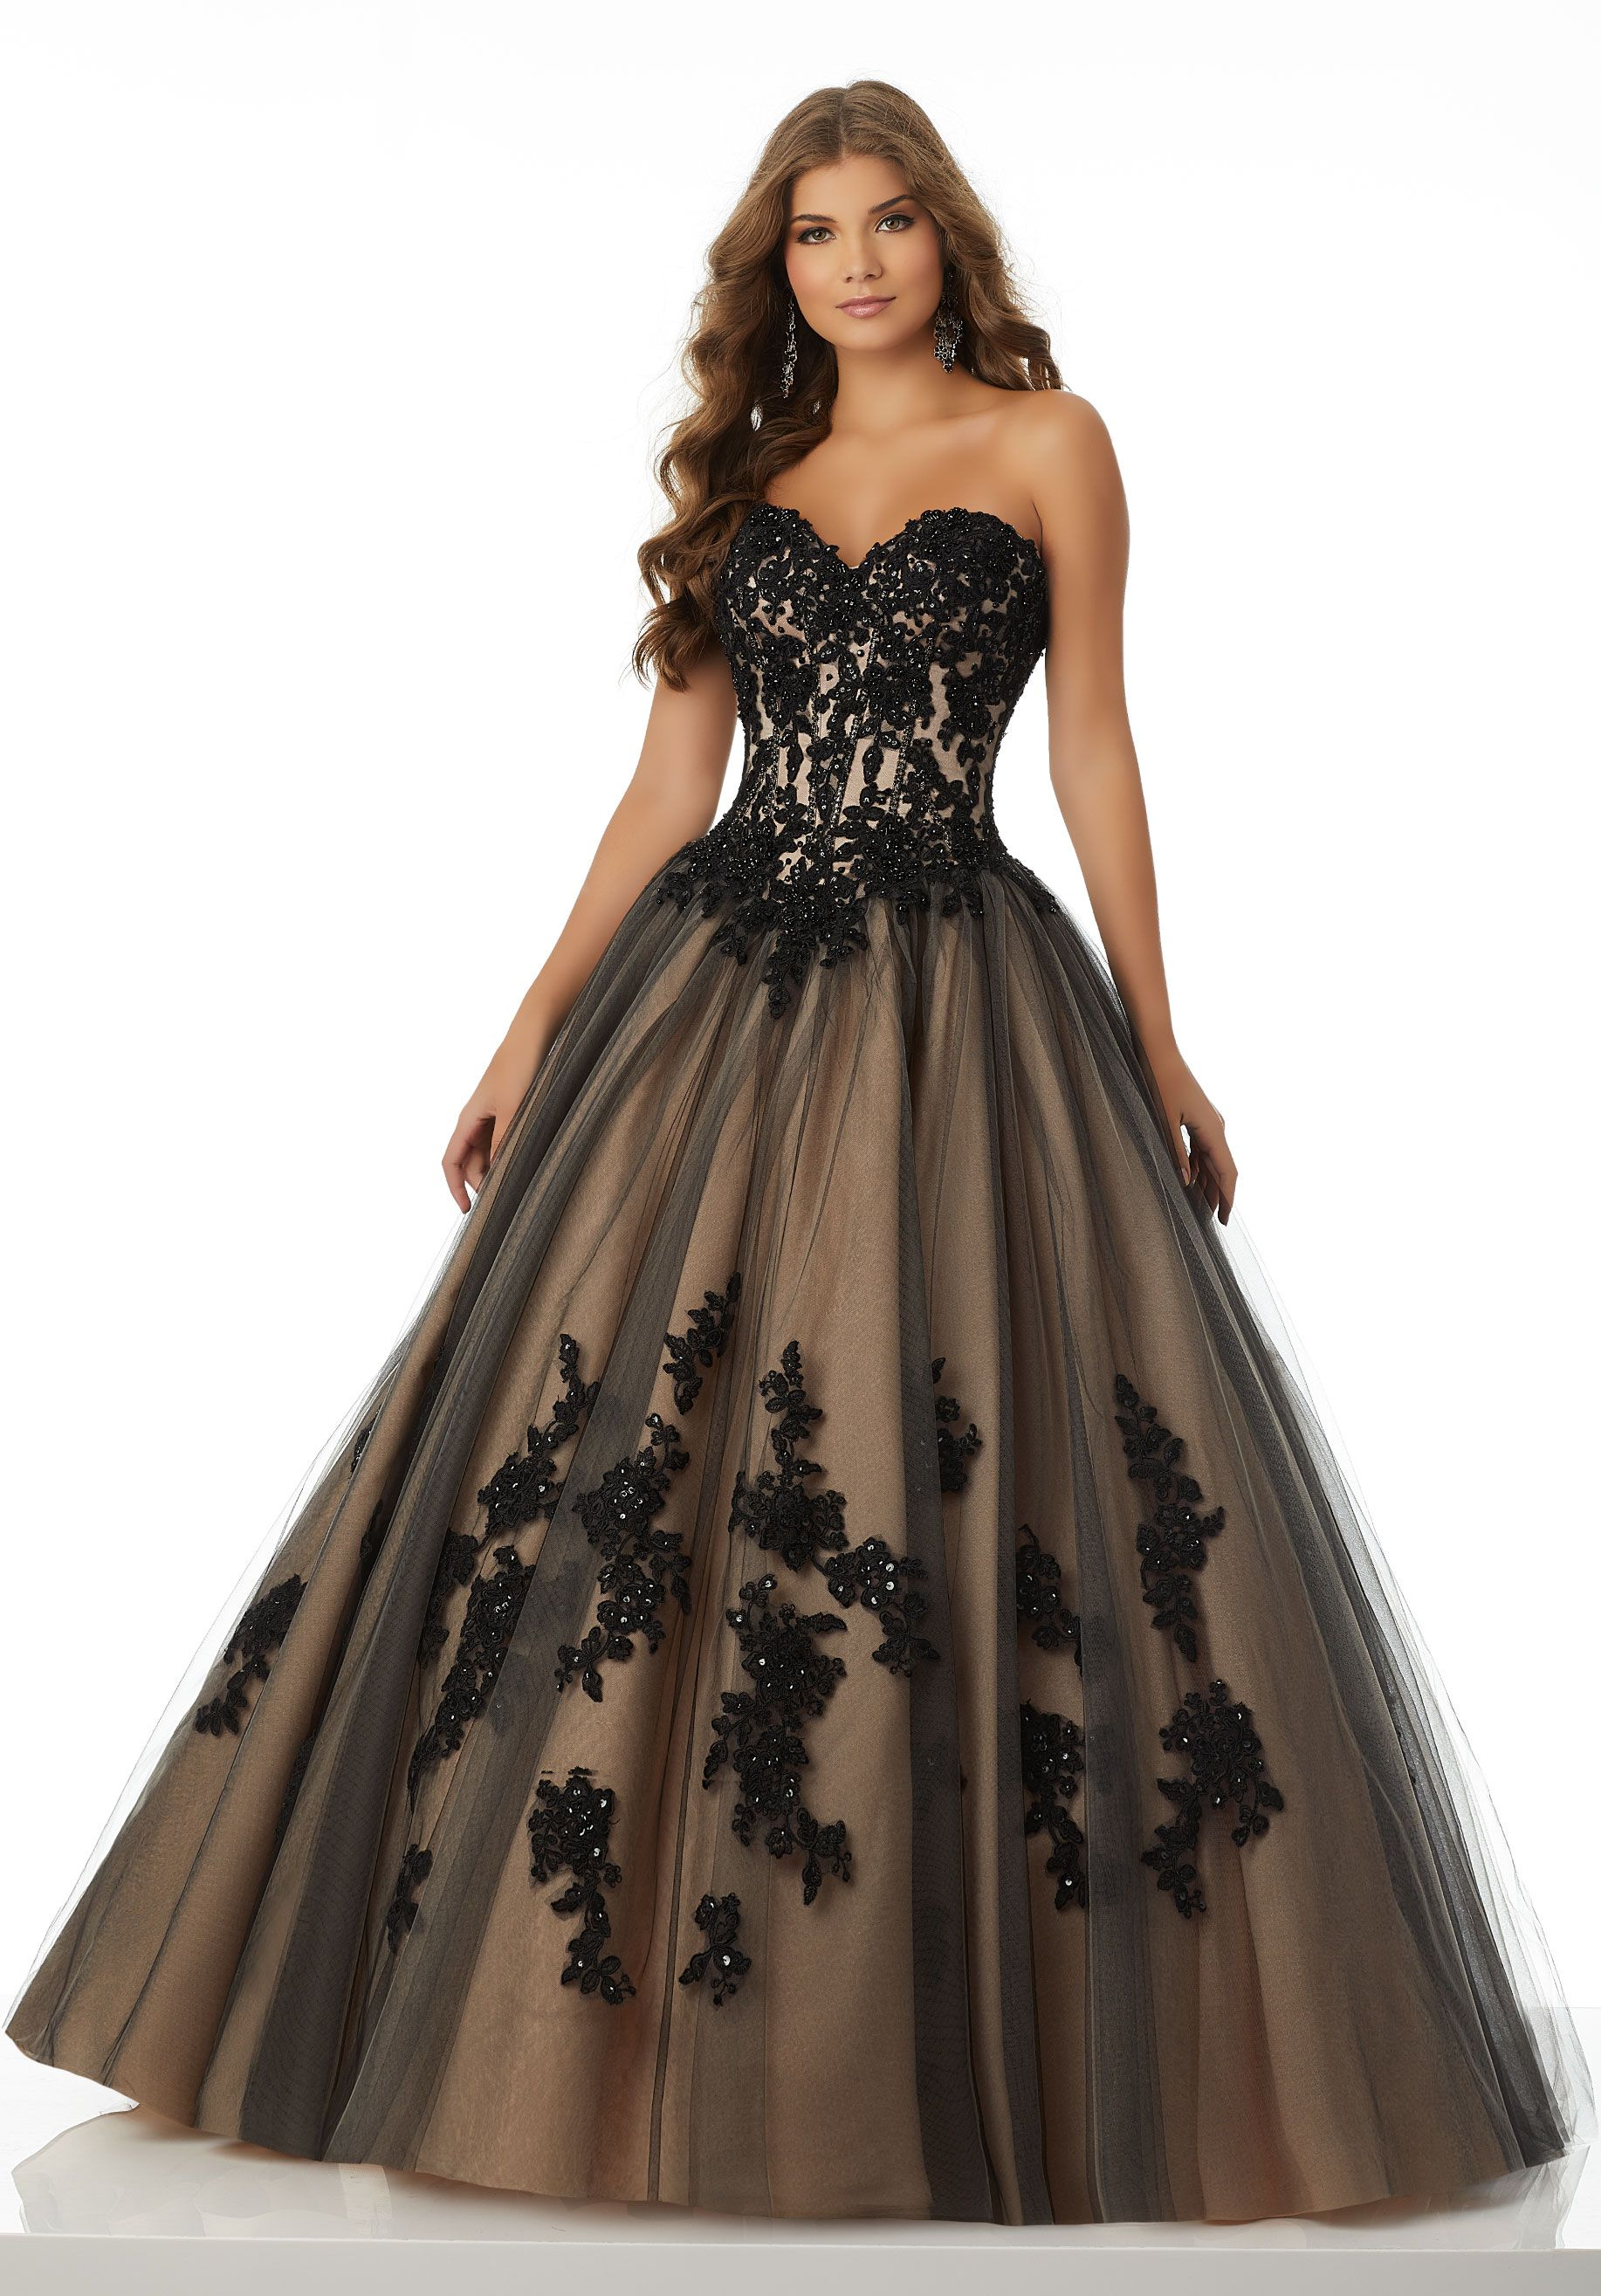 See through corset wedding dresses  Classic Tulle Ballgown Featuring an Exposed Boned Sweetheart Bodice